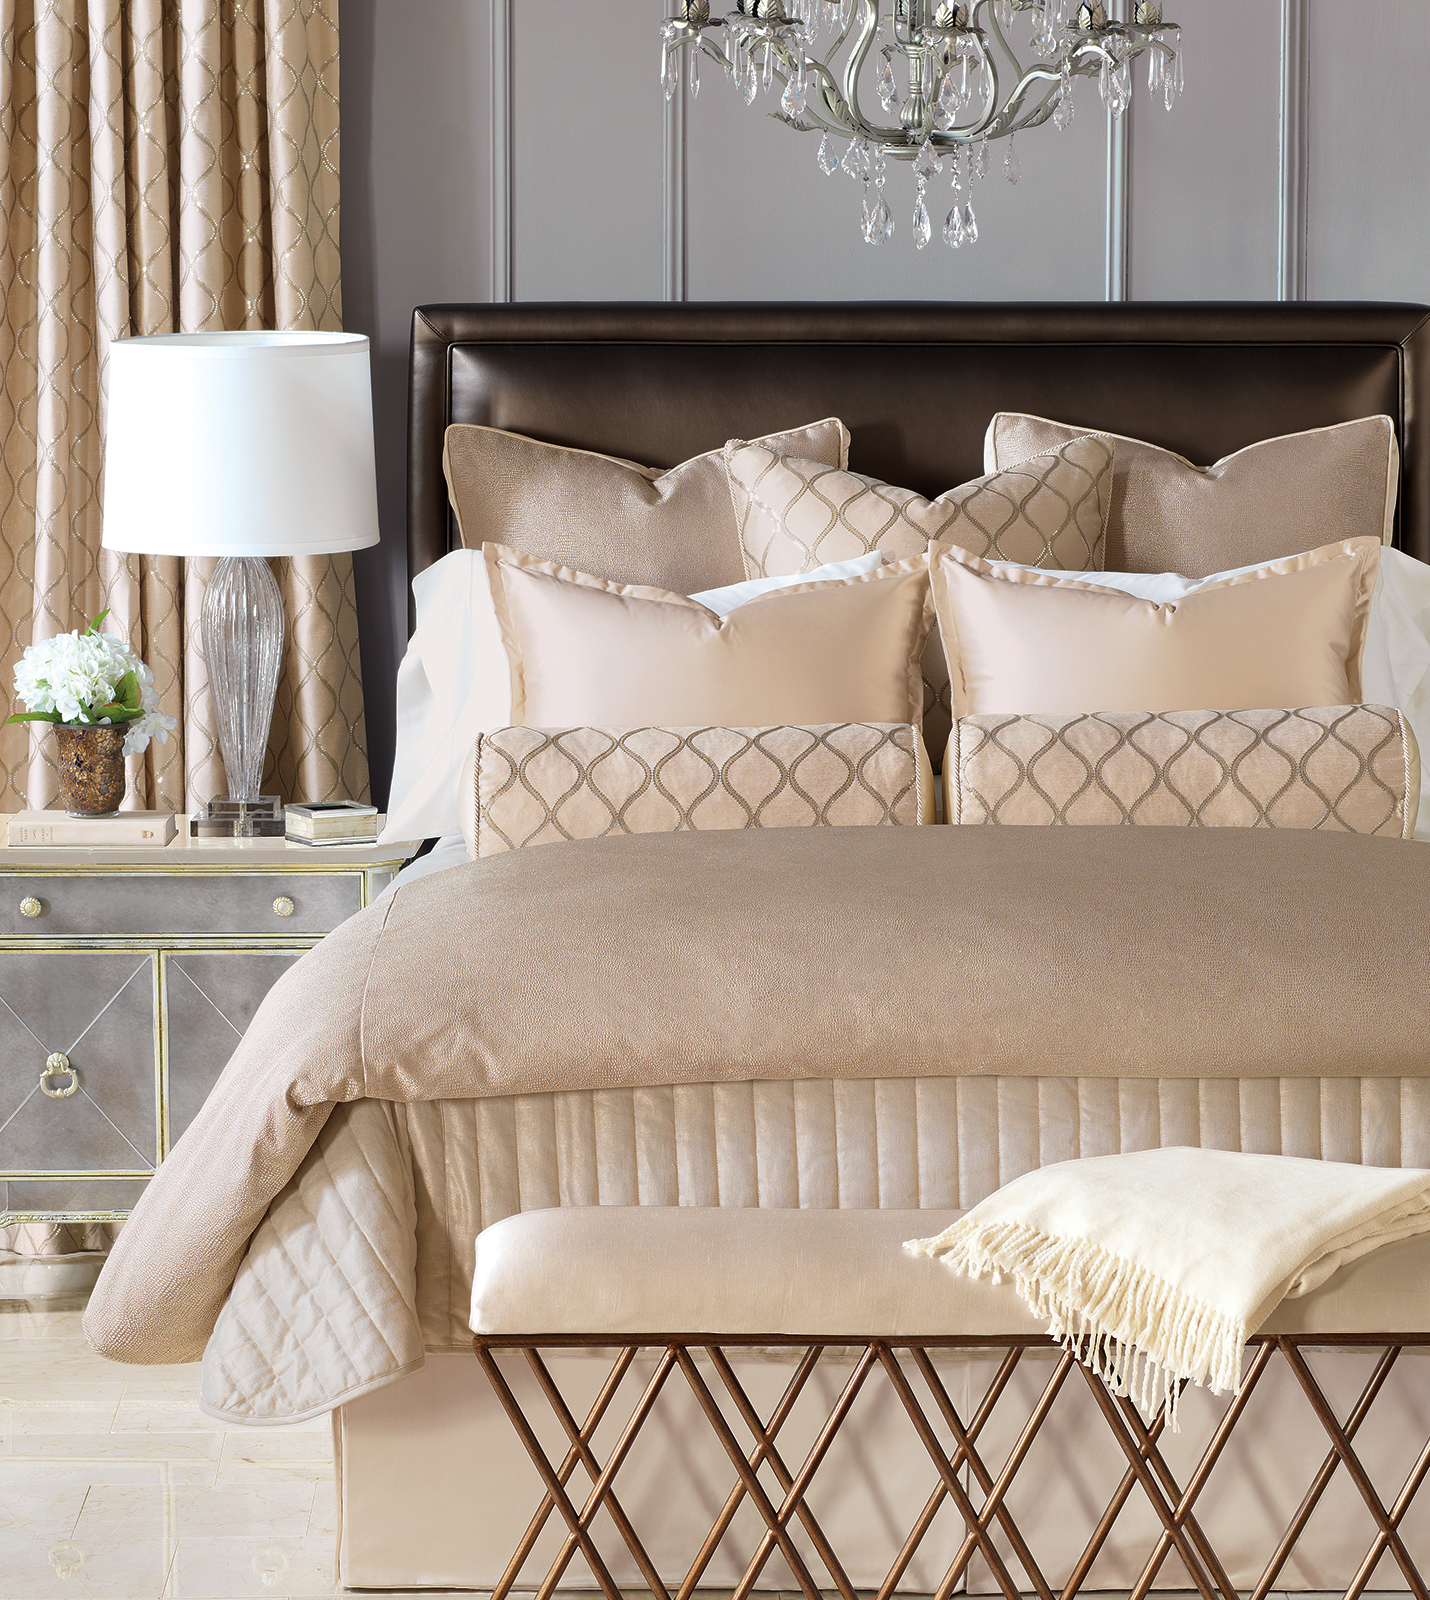 Luxury bedding by eastern accents bardot collection